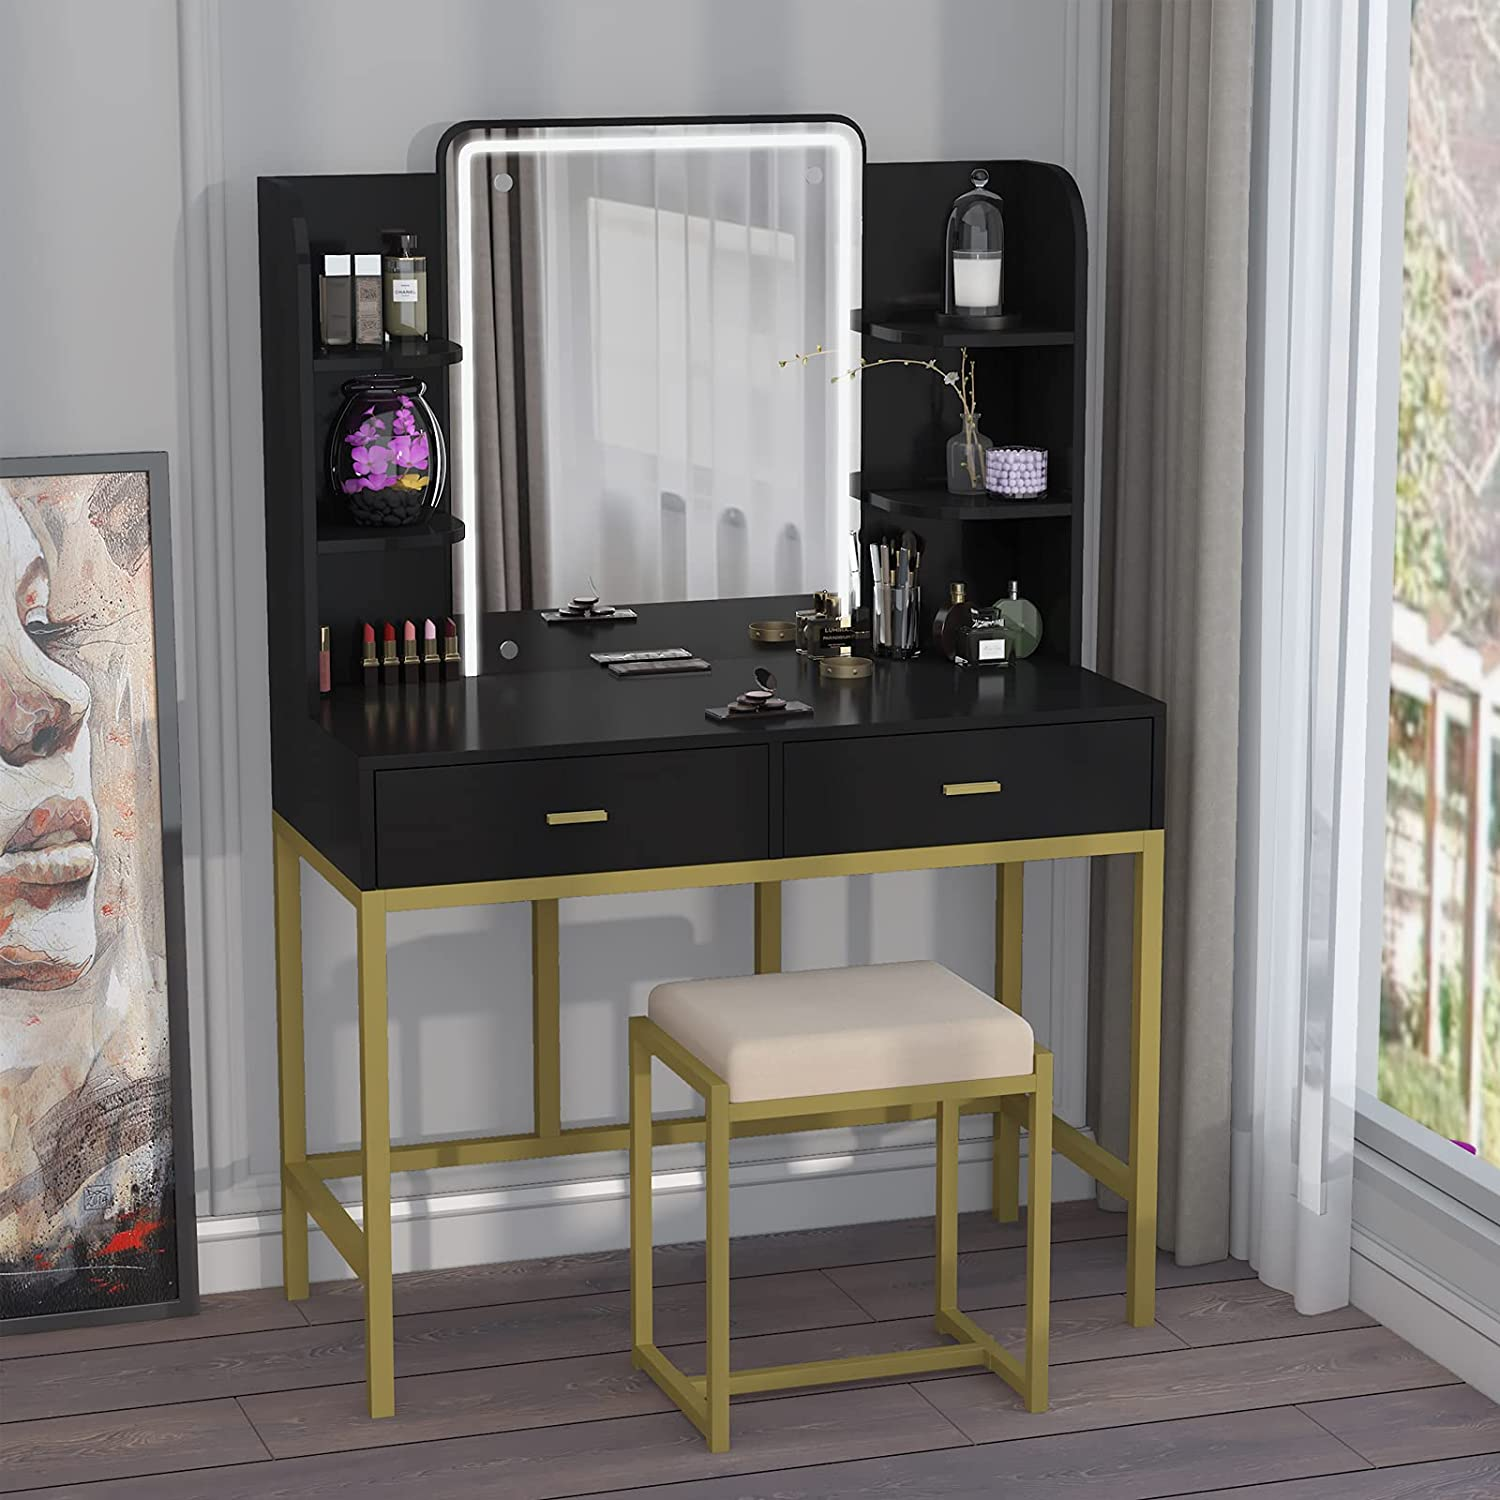 AOUSTHOP Vanity Set Fashionable with Makeup Al sold out. Dressing Mirror Lighted